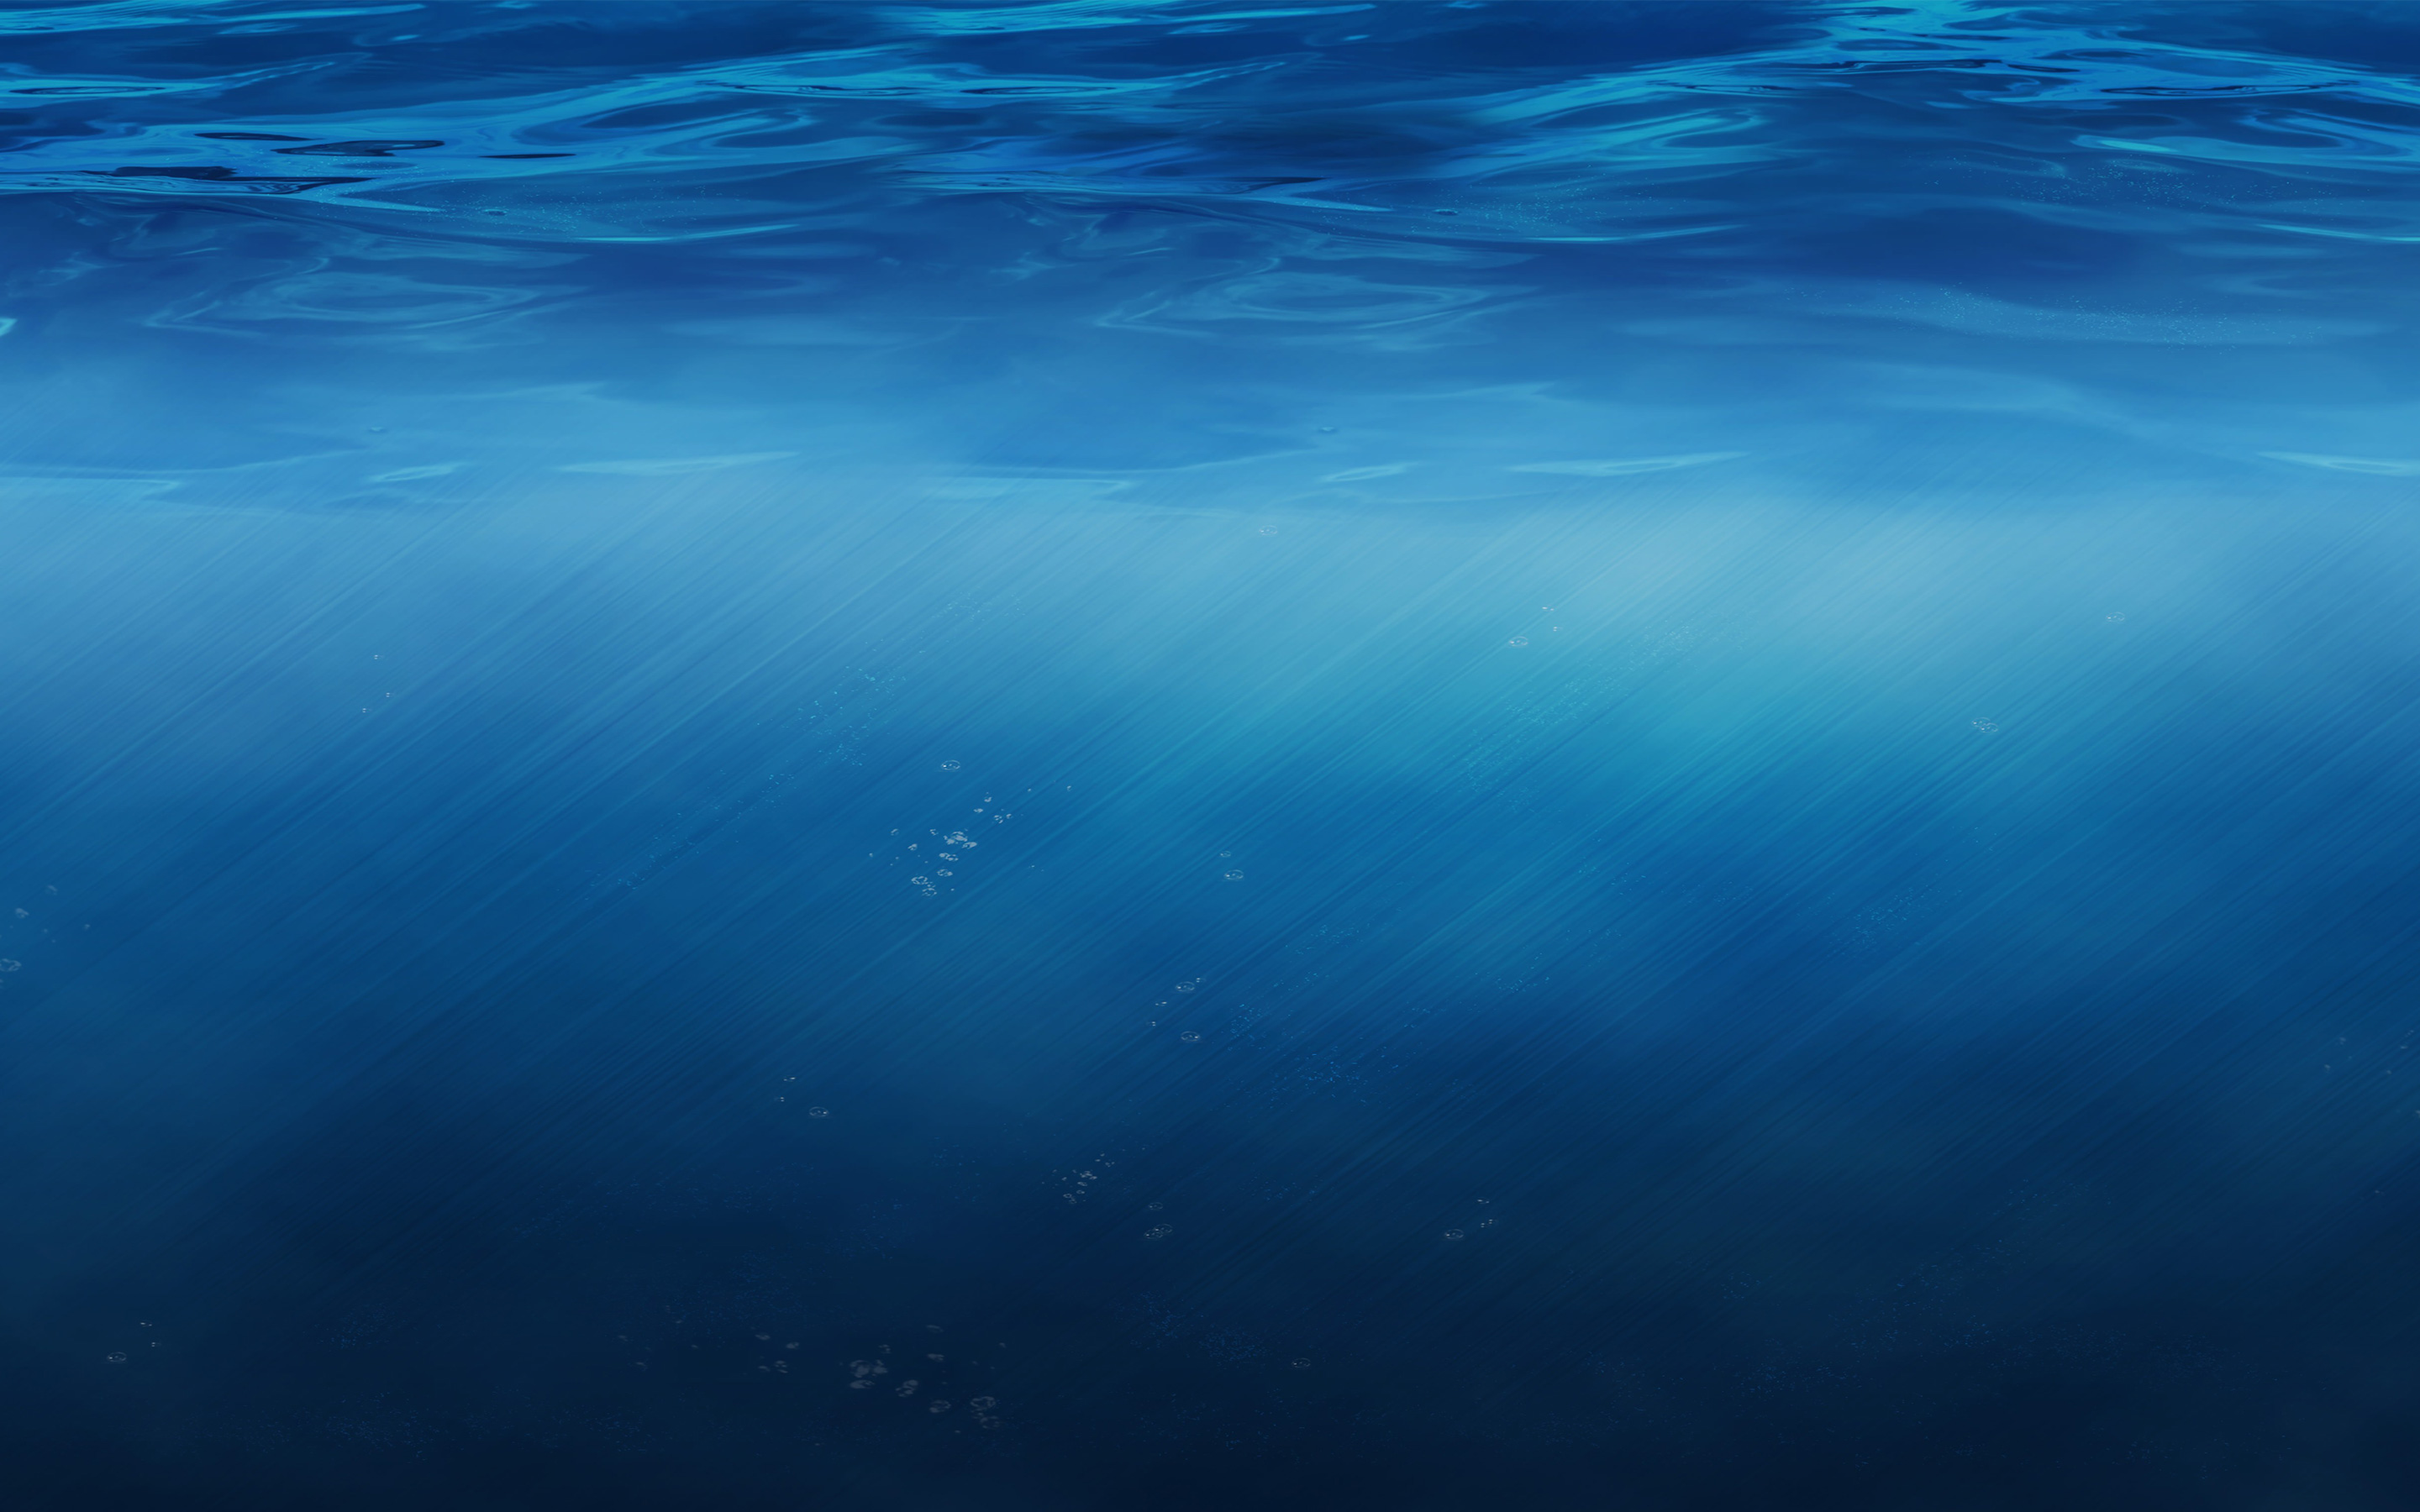 Underwater Pics, Photography Collection